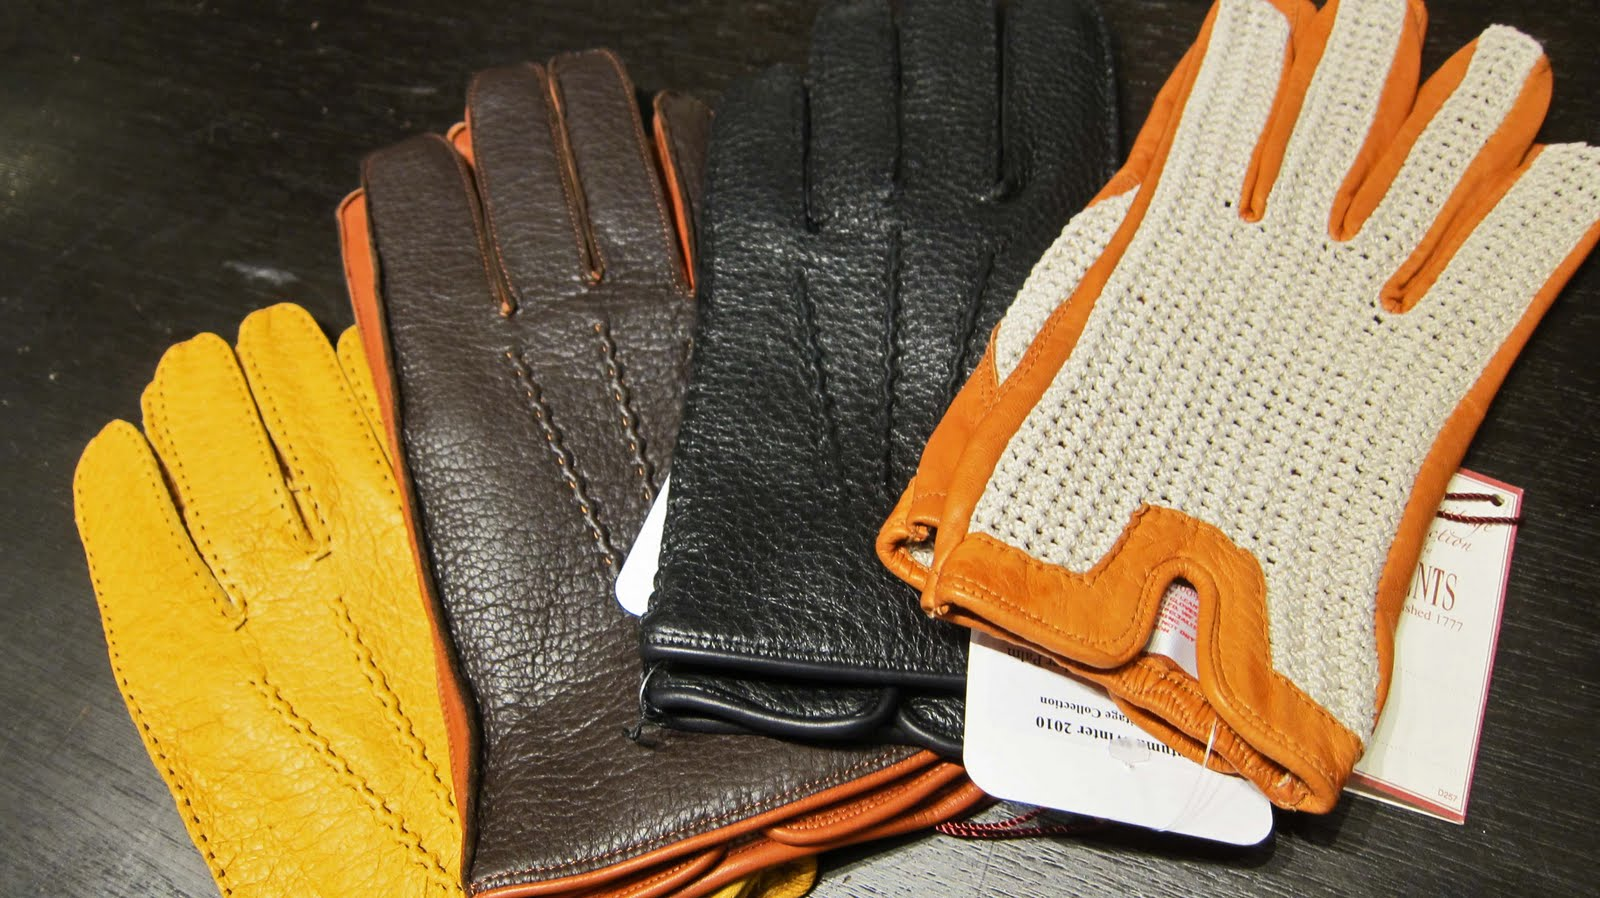 Mercedes driving gloves ebay - L To R Dents Tan Peccary Brown Tan Peccary Black Peccary And Driving Glove Good For A Life